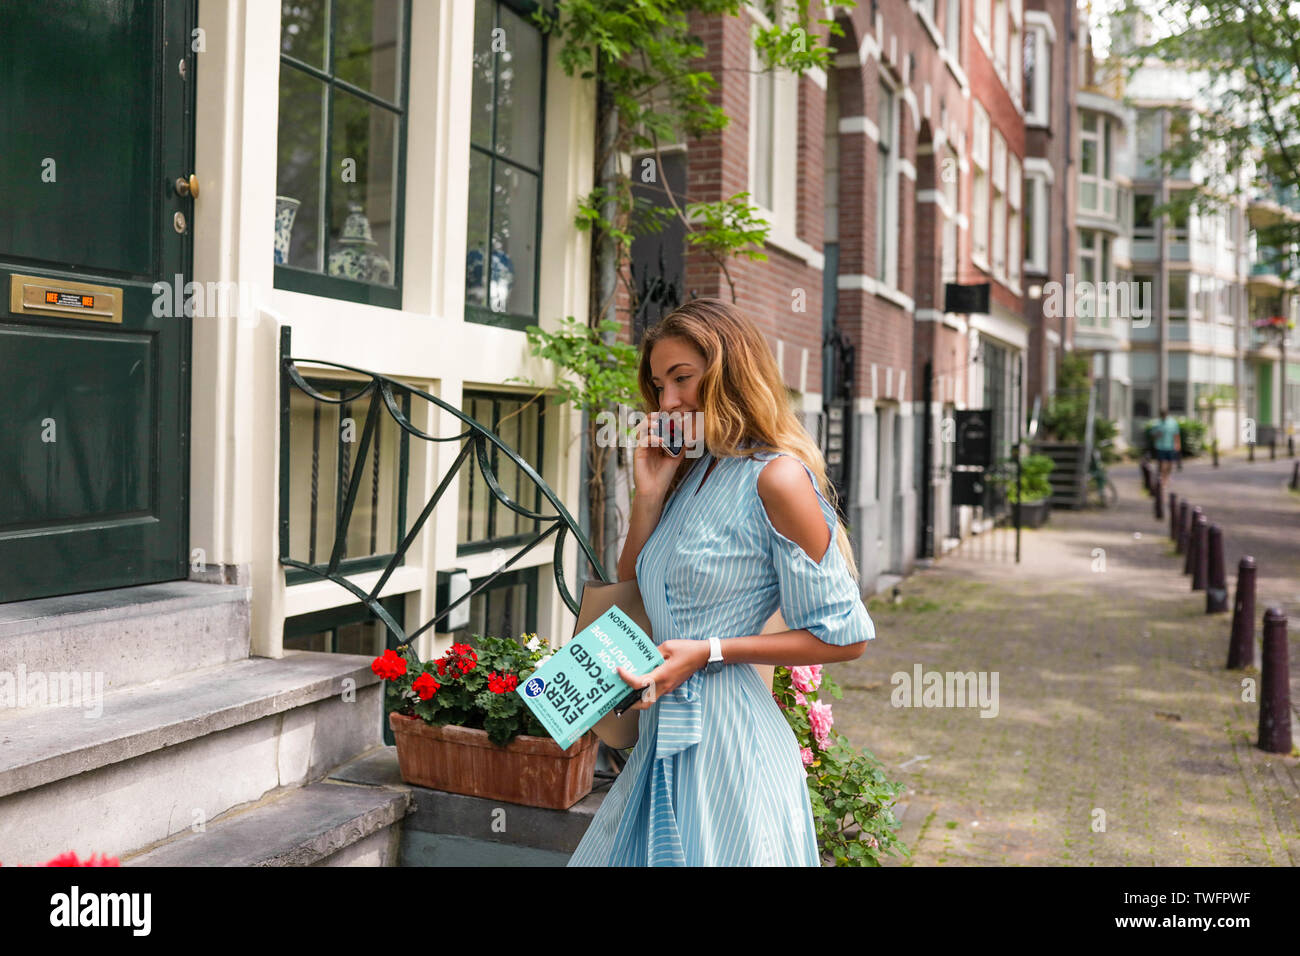 Gently skin and cute blue dress with open shoulders. Lady talking on the phone with her man, smiling and flirting. Holding a book in her hand, standin Stock Photo